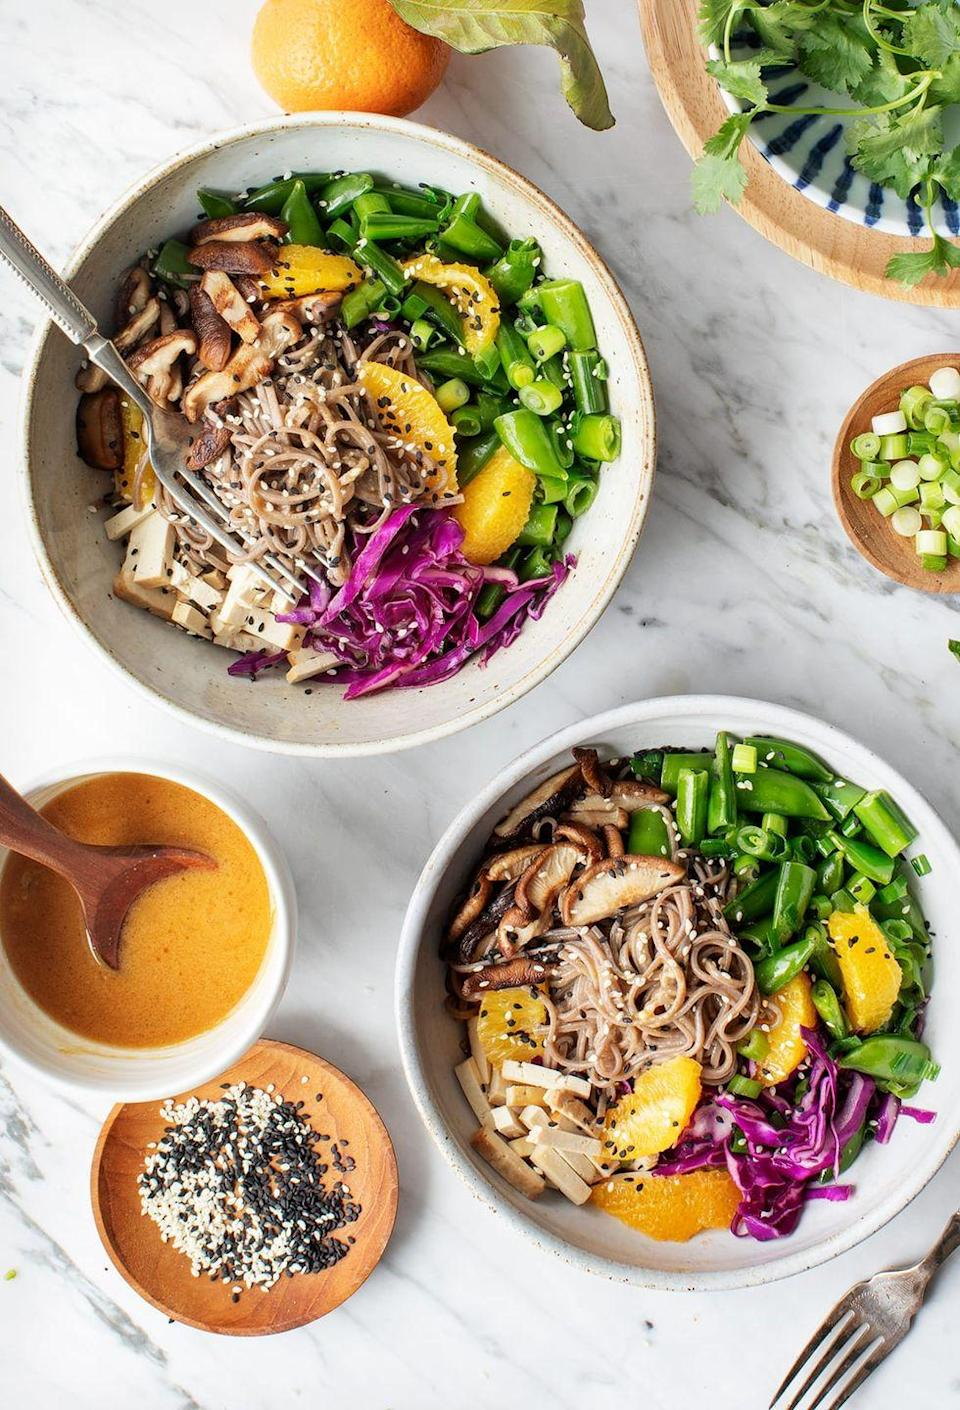 """<p>Soy sauce and mushrooms are a match made in umami heaven, while even more fresh elements make this refreshing lunch bowl a flavor powerhouse.</p><p><em><em><a href=""""https://www.loveandlemons.com/sesame-orange-noodle-bowl/"""" rel=""""nofollow noopener"""" target=""""_blank"""" data-ylk=""""slk:Get the recipe from Love and Lemons »"""" class=""""link rapid-noclick-resp"""">Get the recipe from Love and Lemons »</a></em></em> </p>"""